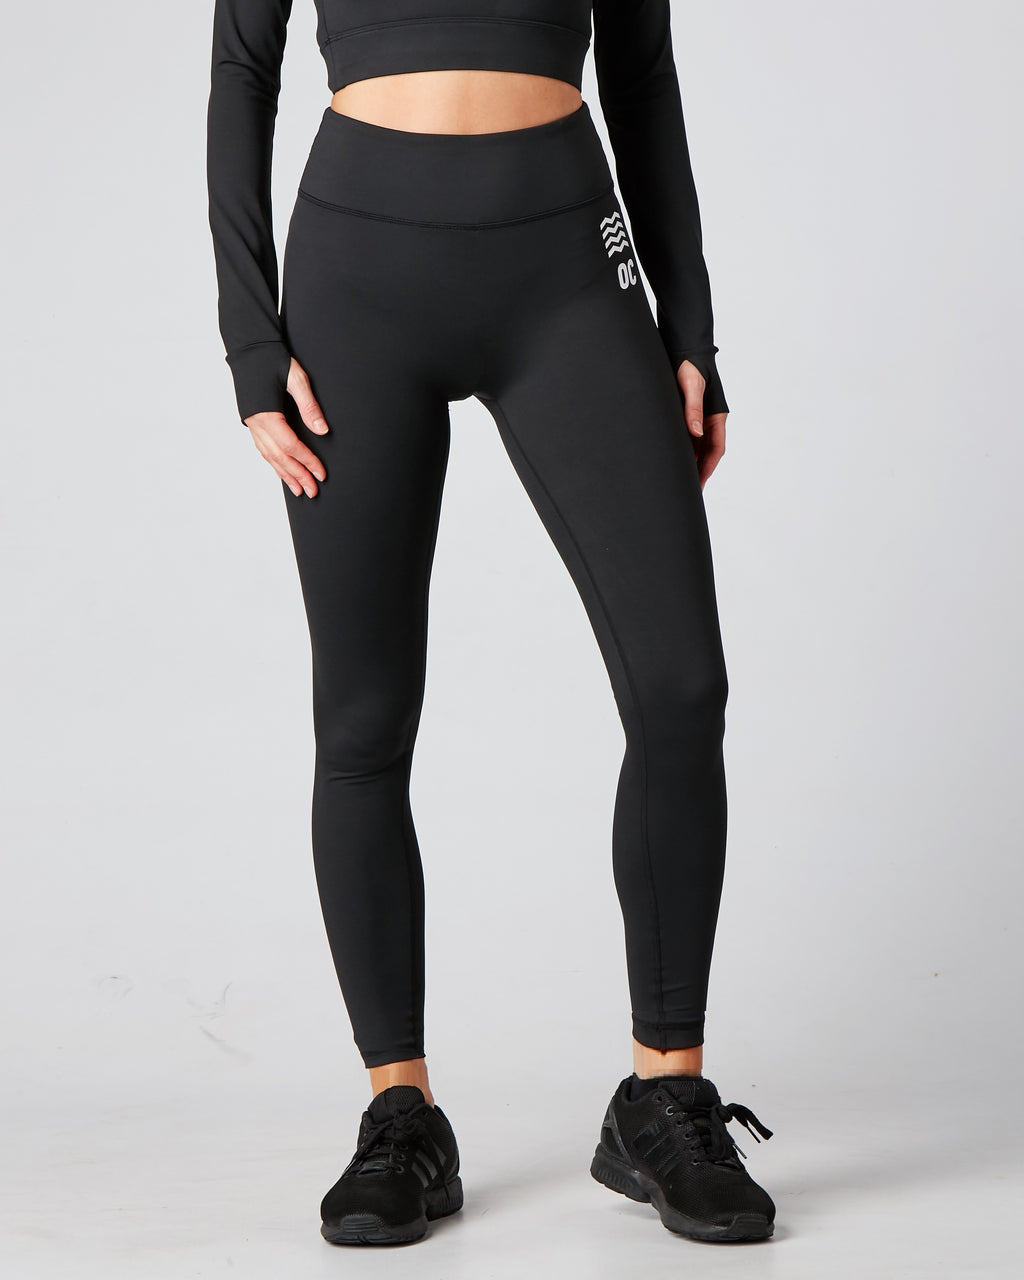 OC Eco Seamless Black Leggings